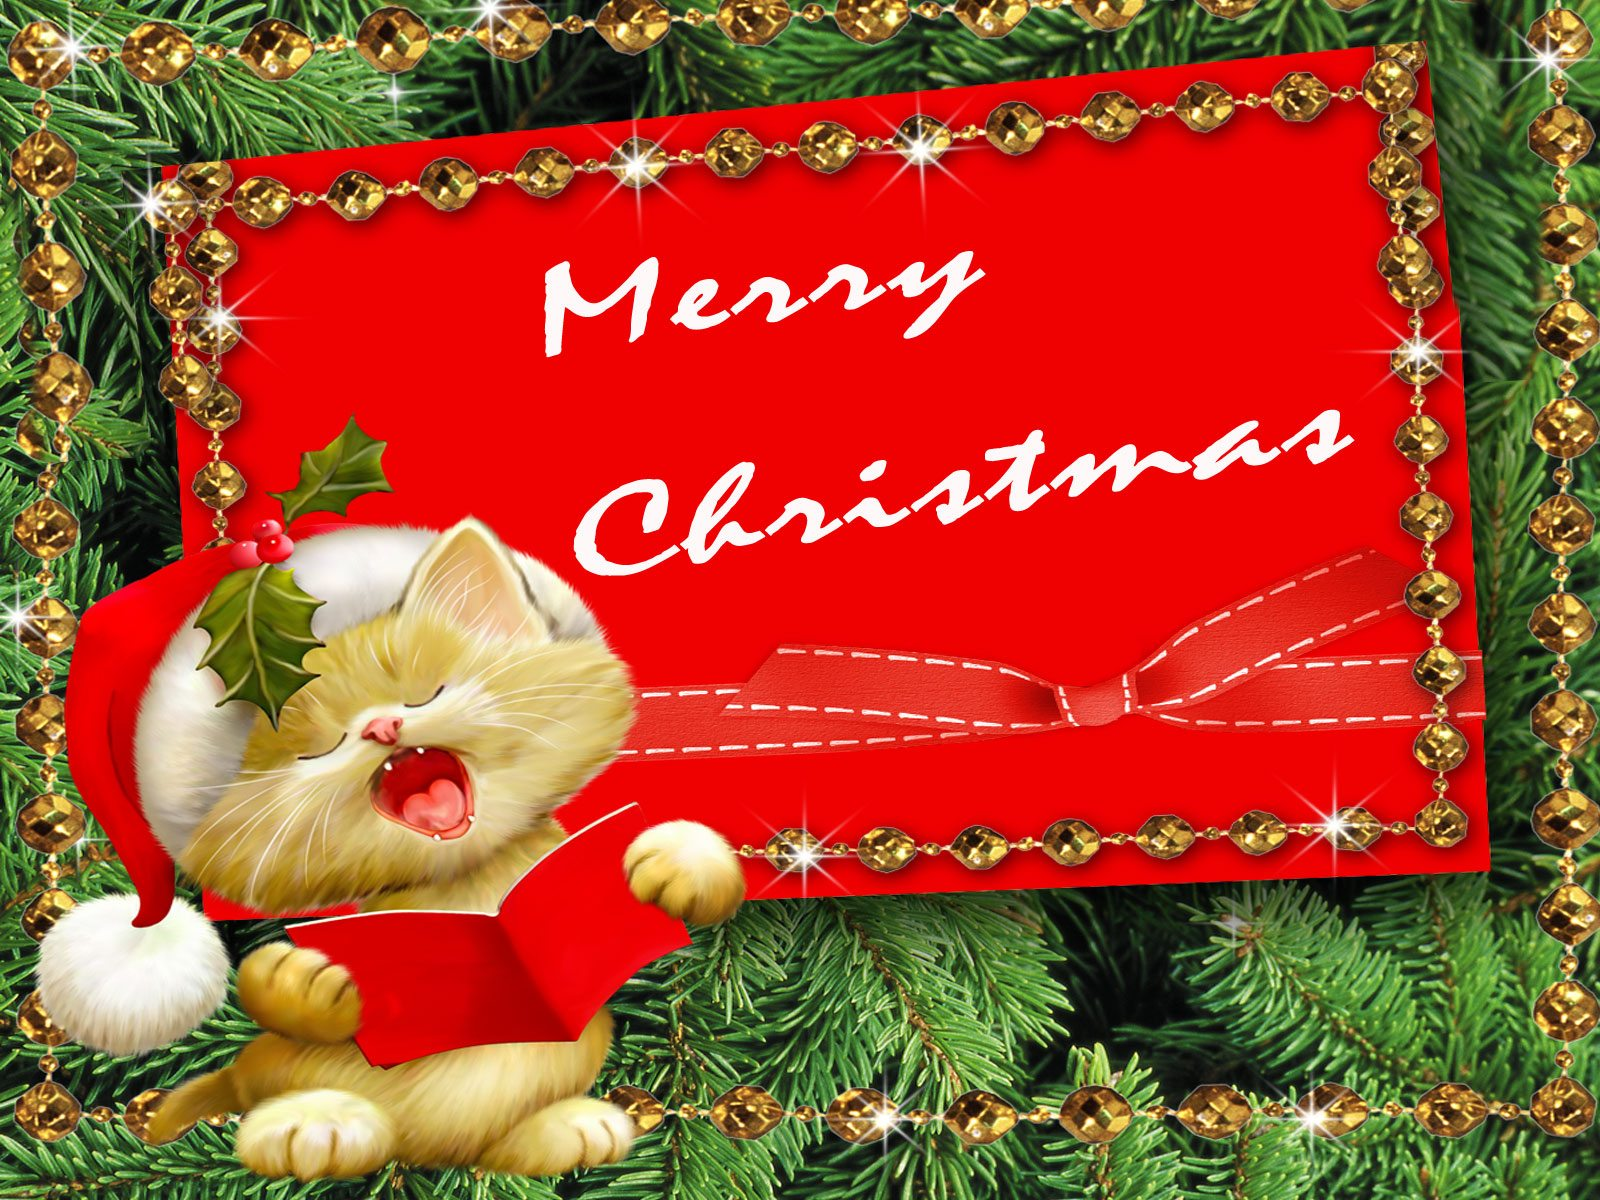 cute-merry-christmas-wallpaper-backgrounds-image